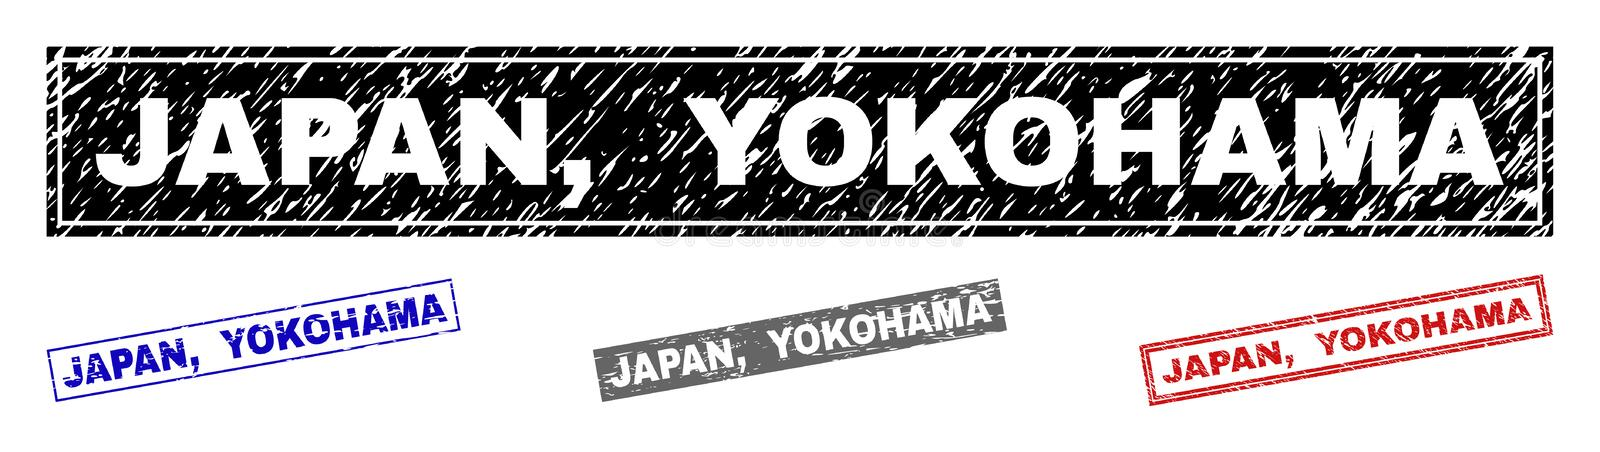 Grunge JAPAN, YOKOHAMA Textured Rectangle Stamps. Grunge JAPAN, YOKOHAMA rectangle stamp seals isolated on a white background. Rectangular seals with grunge royalty free illustration